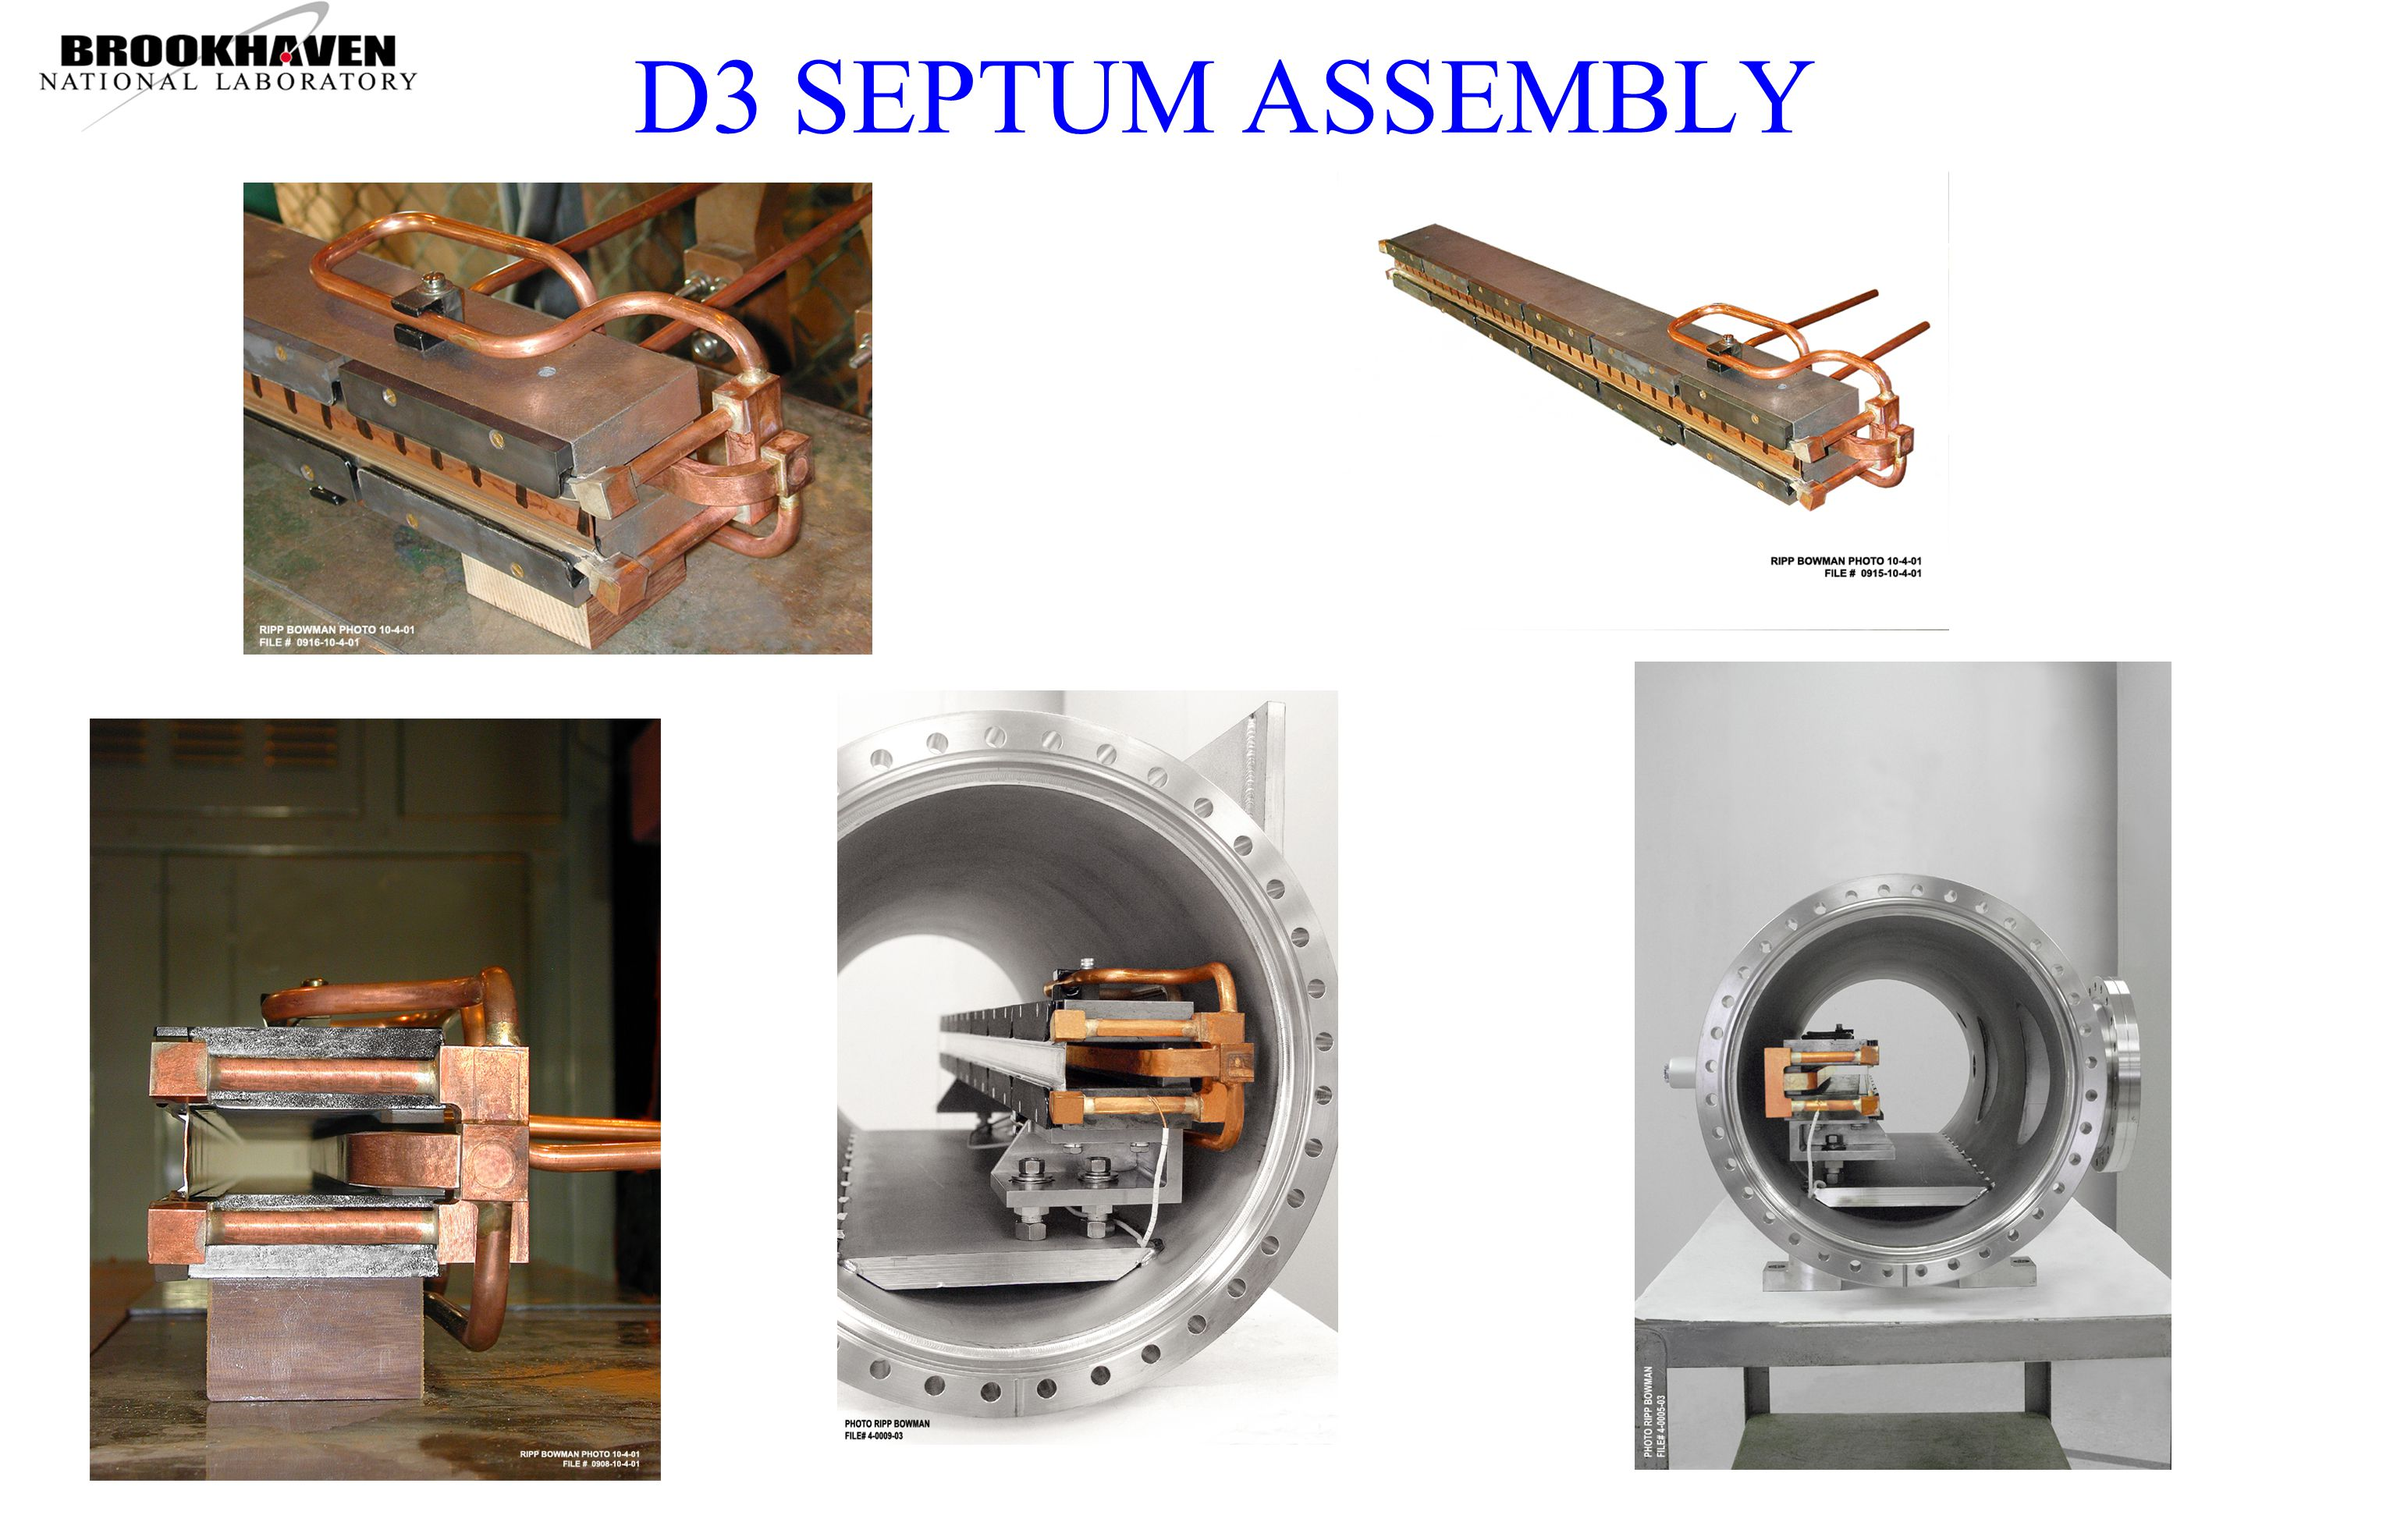 D3 SEPTUM ASSEMBLY